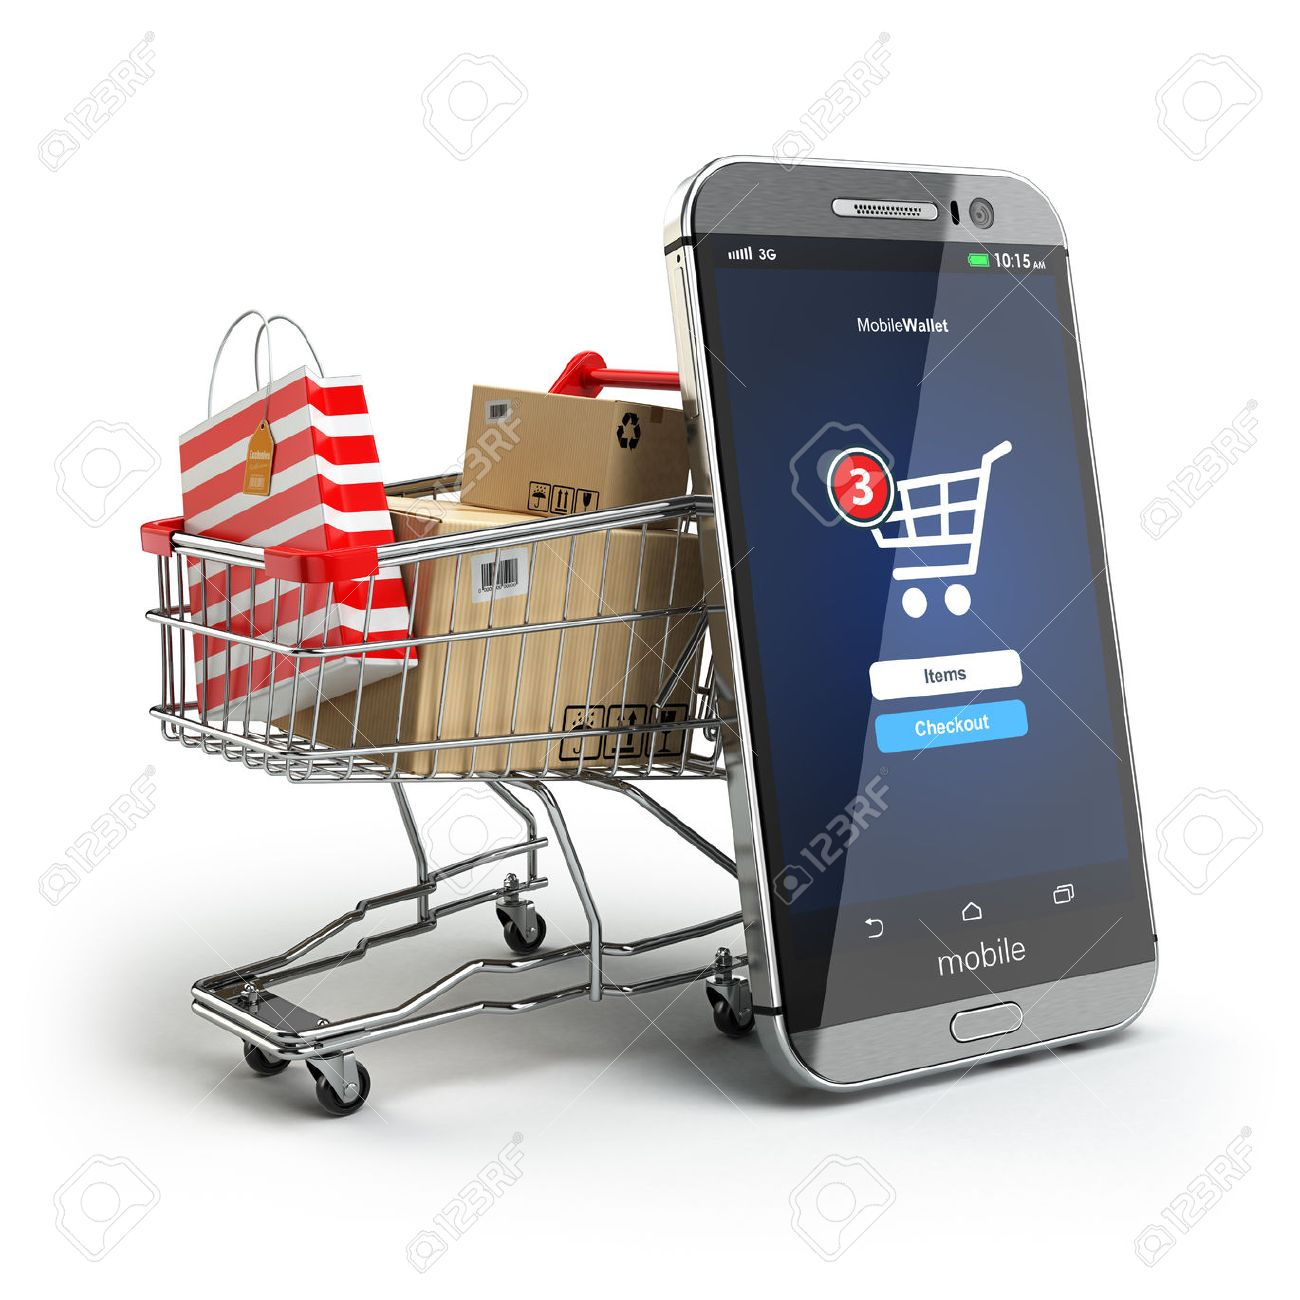 78b02e9ad01 Online shopping concept. Mobile phone or smartphone with cart and boxes and  bag. 3d